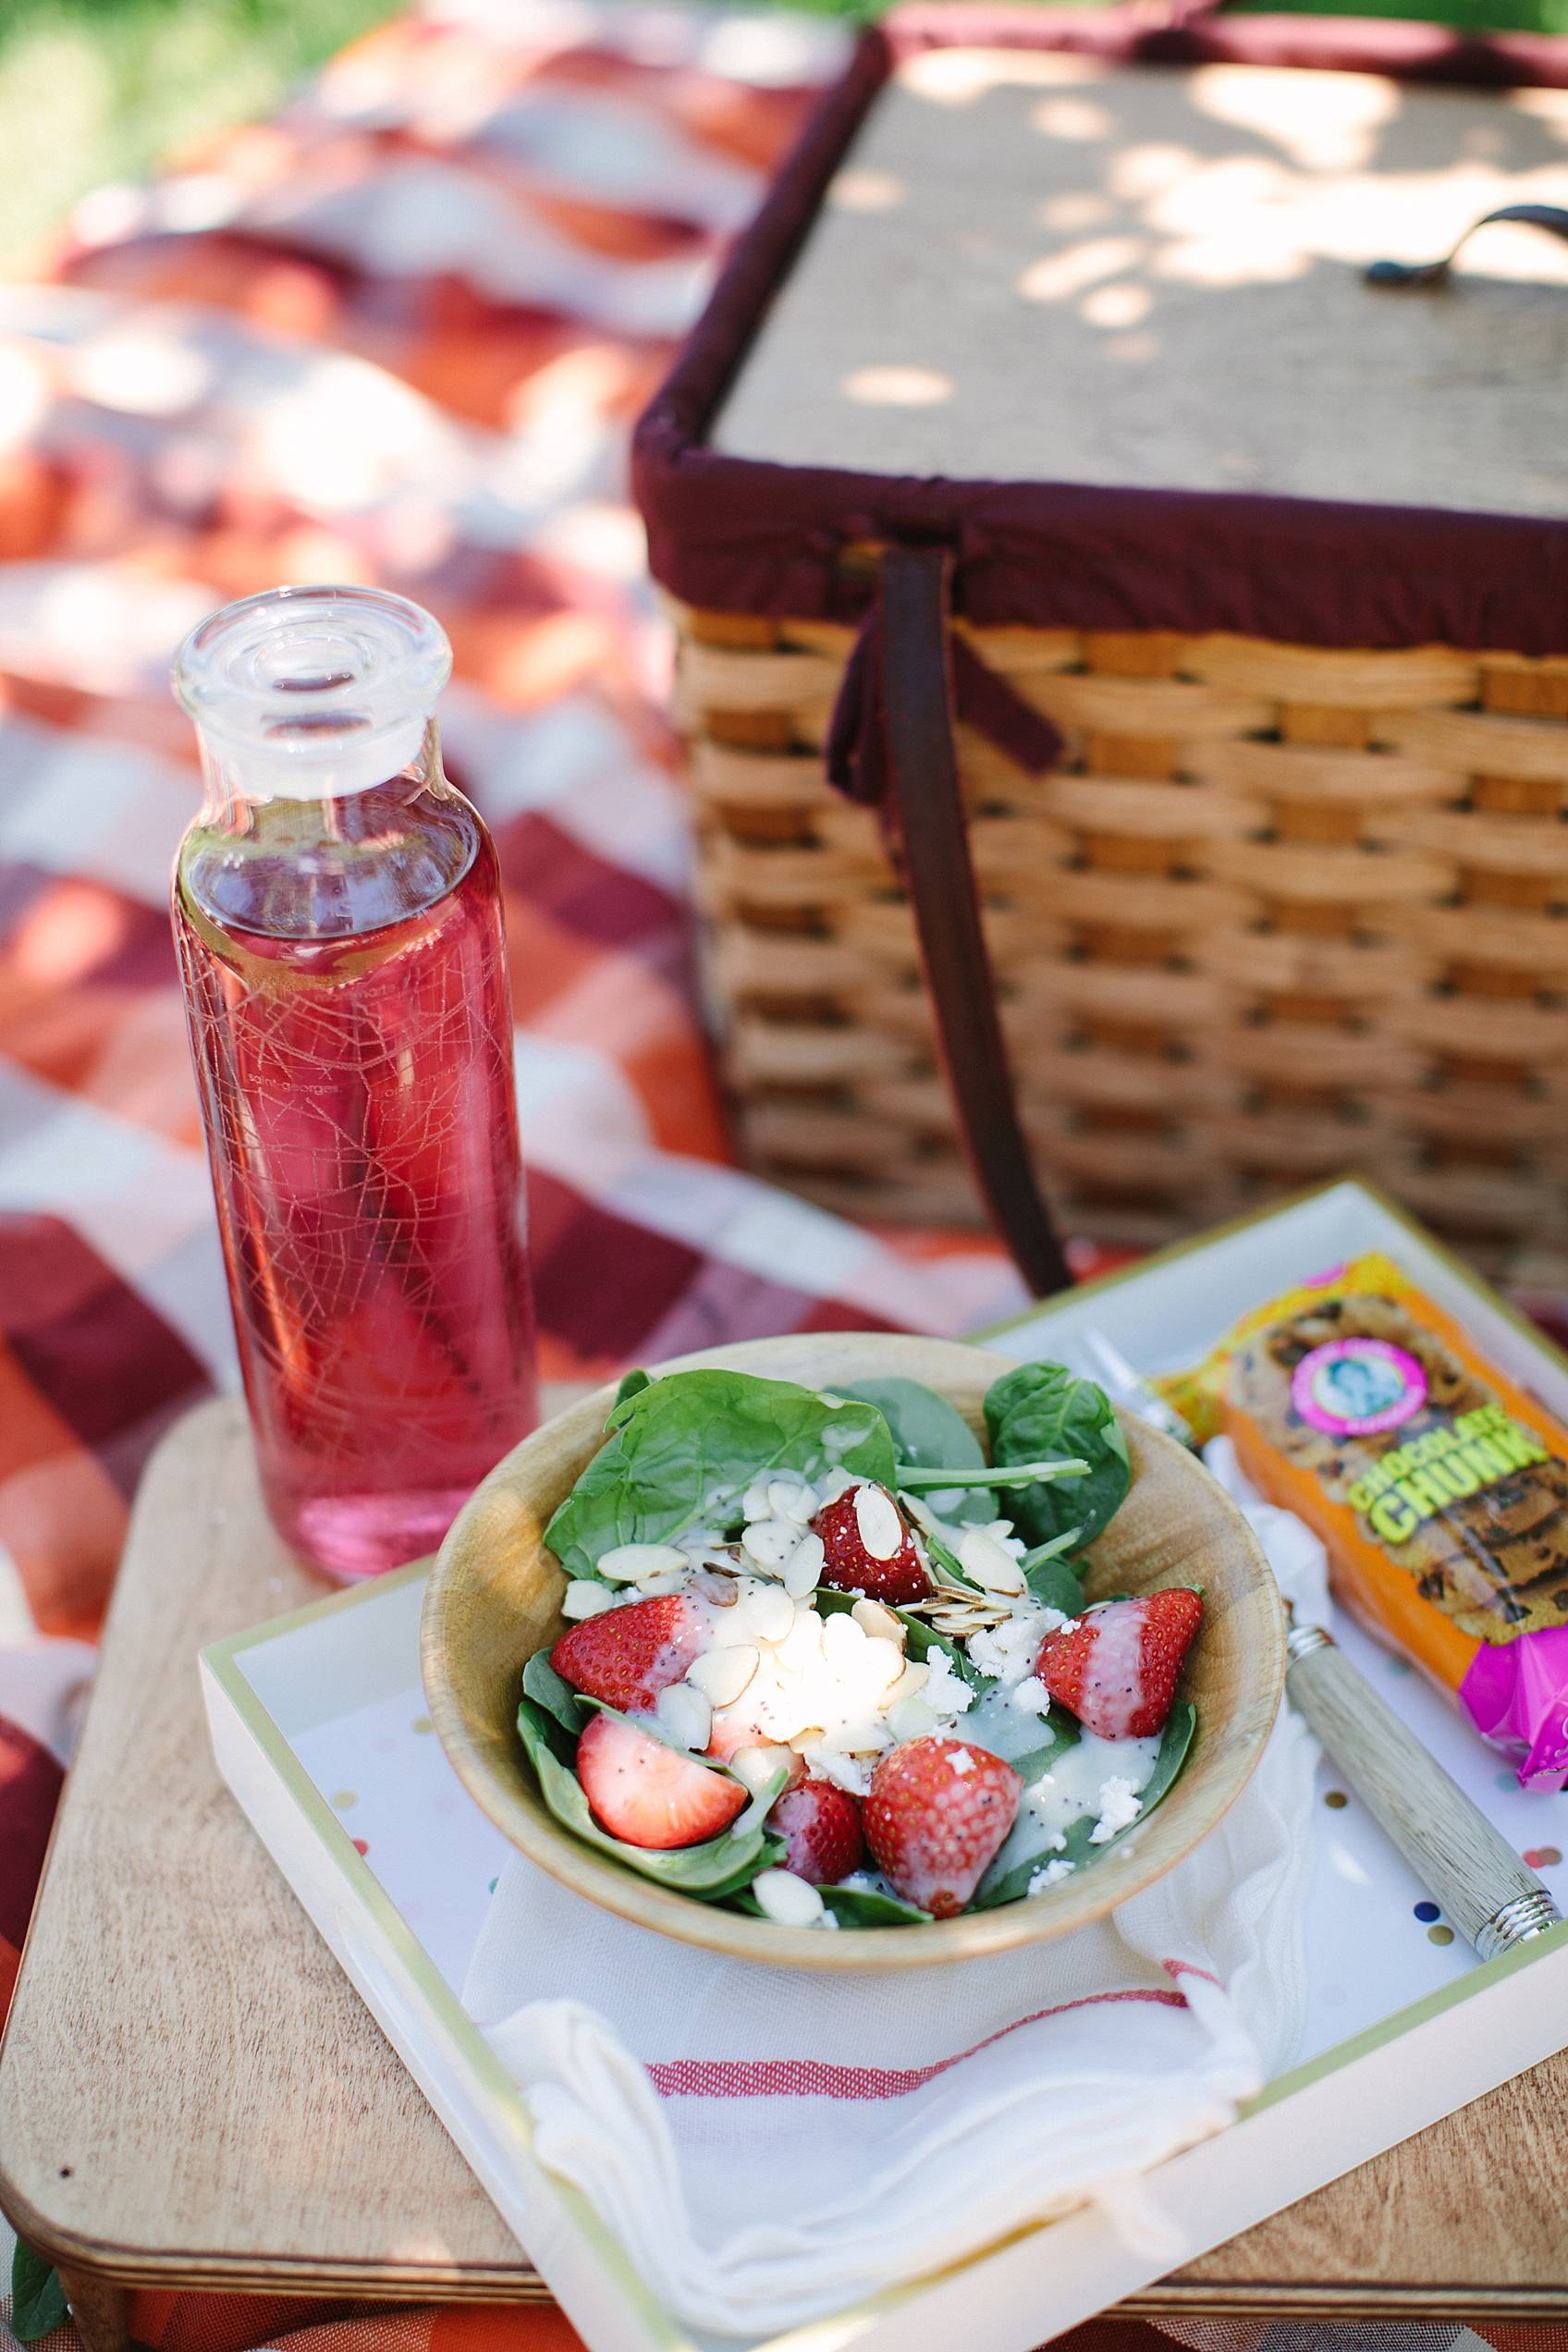 picnic basket in background on blanket featuring strawberry spinach salad with goat cheese